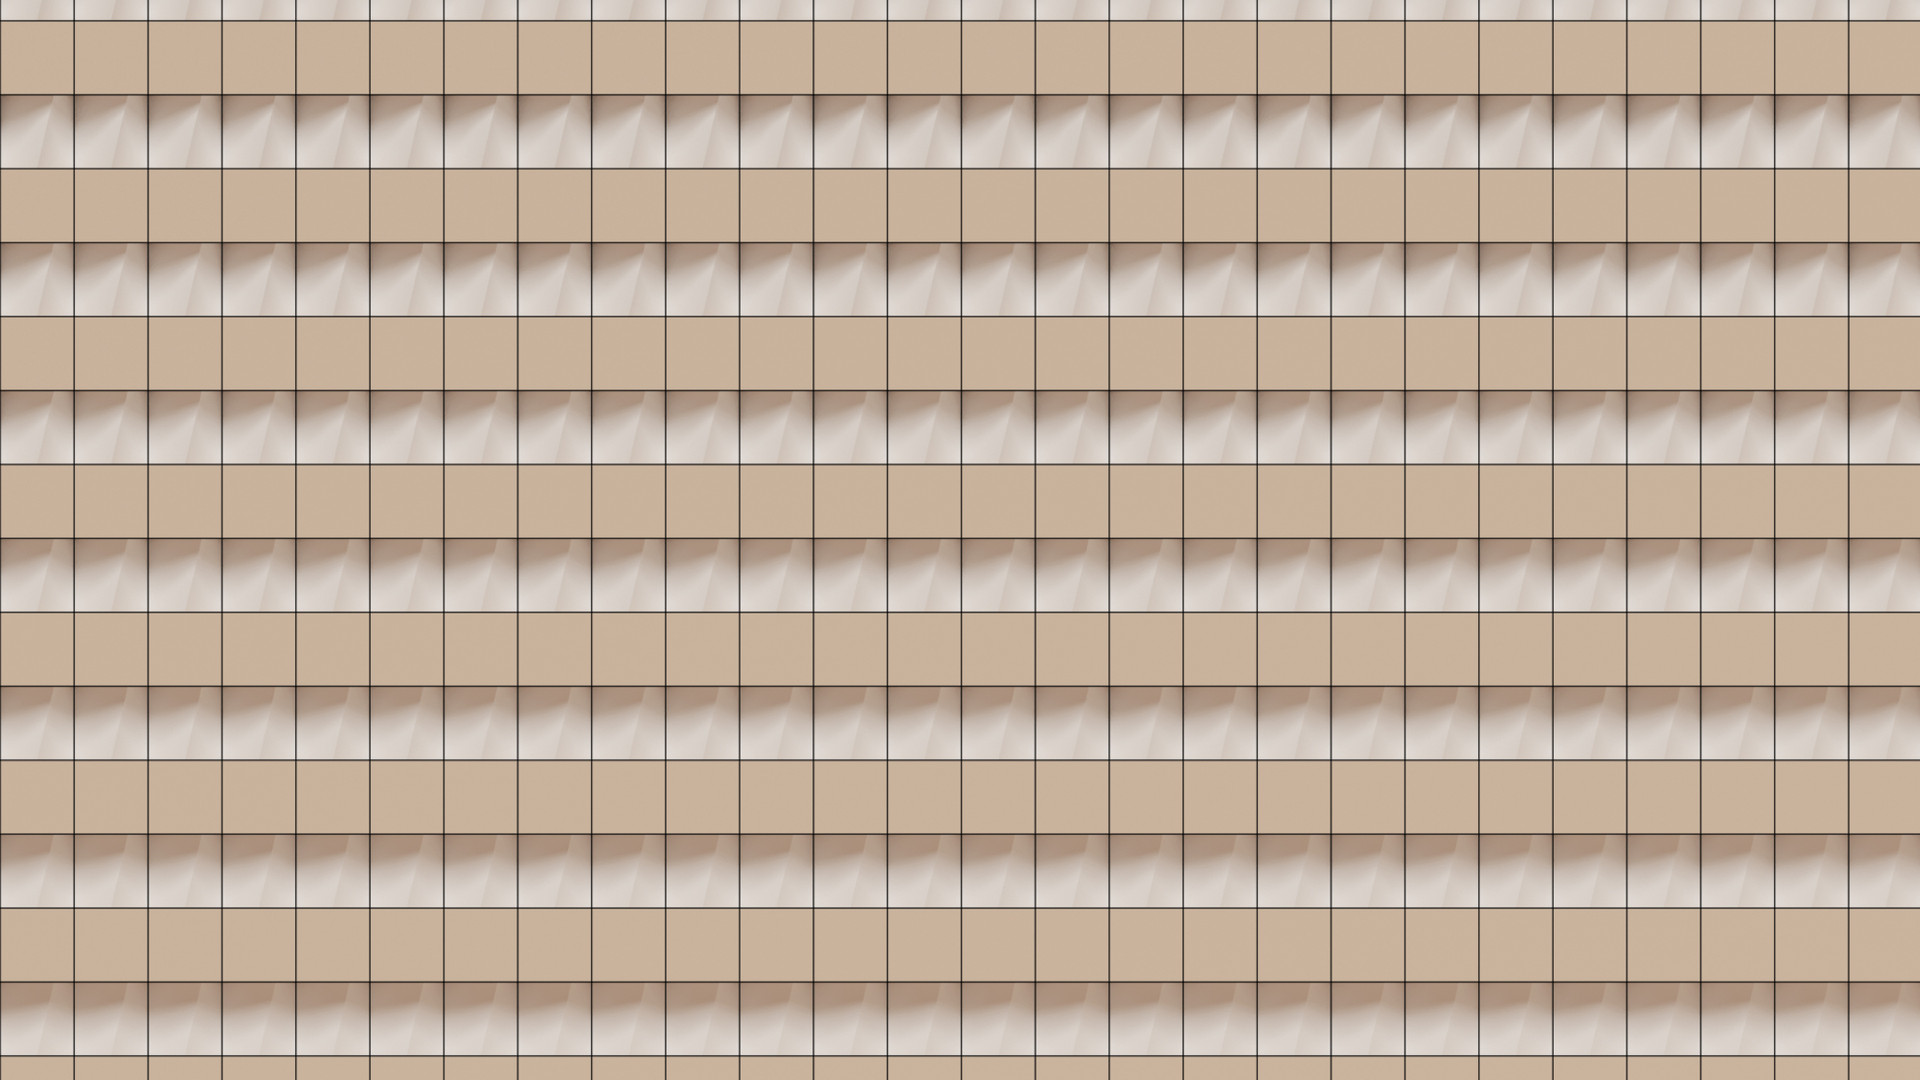 Extruded Blocks Pattern